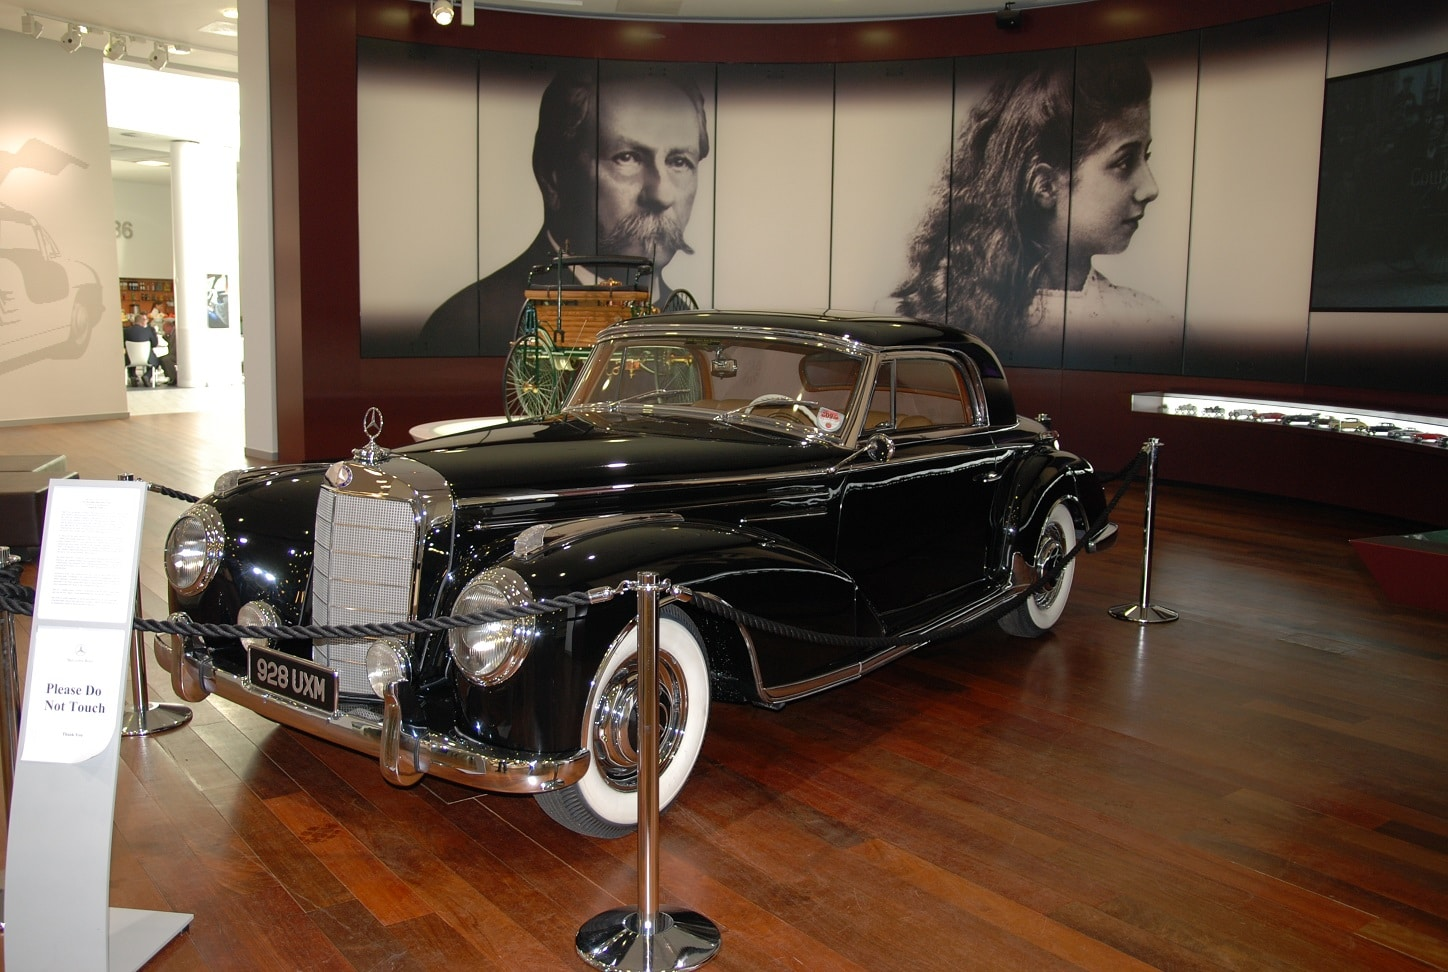 1955 the Mercedes-Benz 300SC on display at Mercedes-Benz World